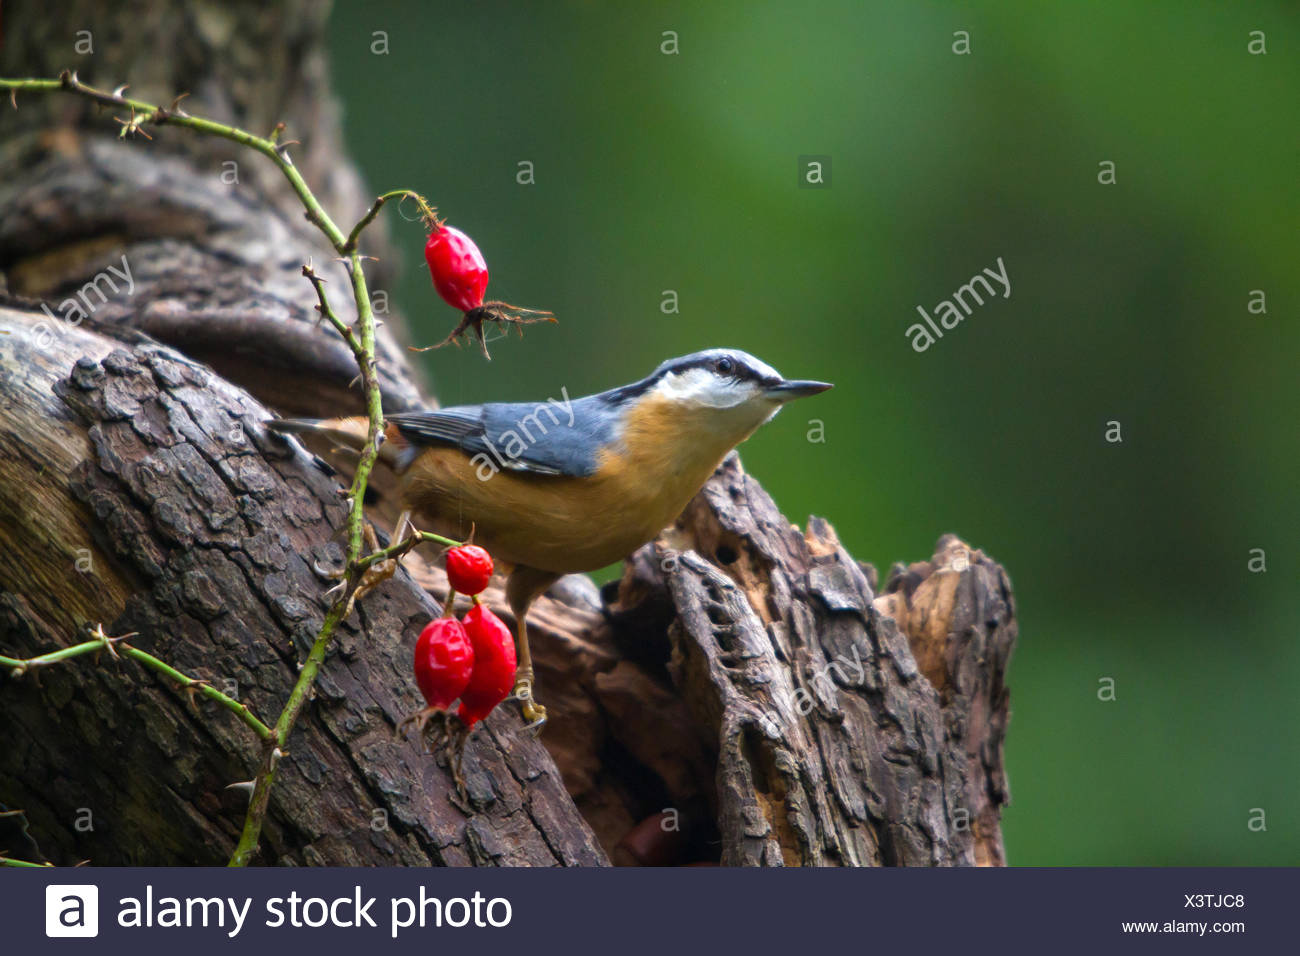 Eurasian nuthatch (Sitta europaea), searching food at an old tree, Switzerland, Sankt Gallen, Rheineck - Stock Image